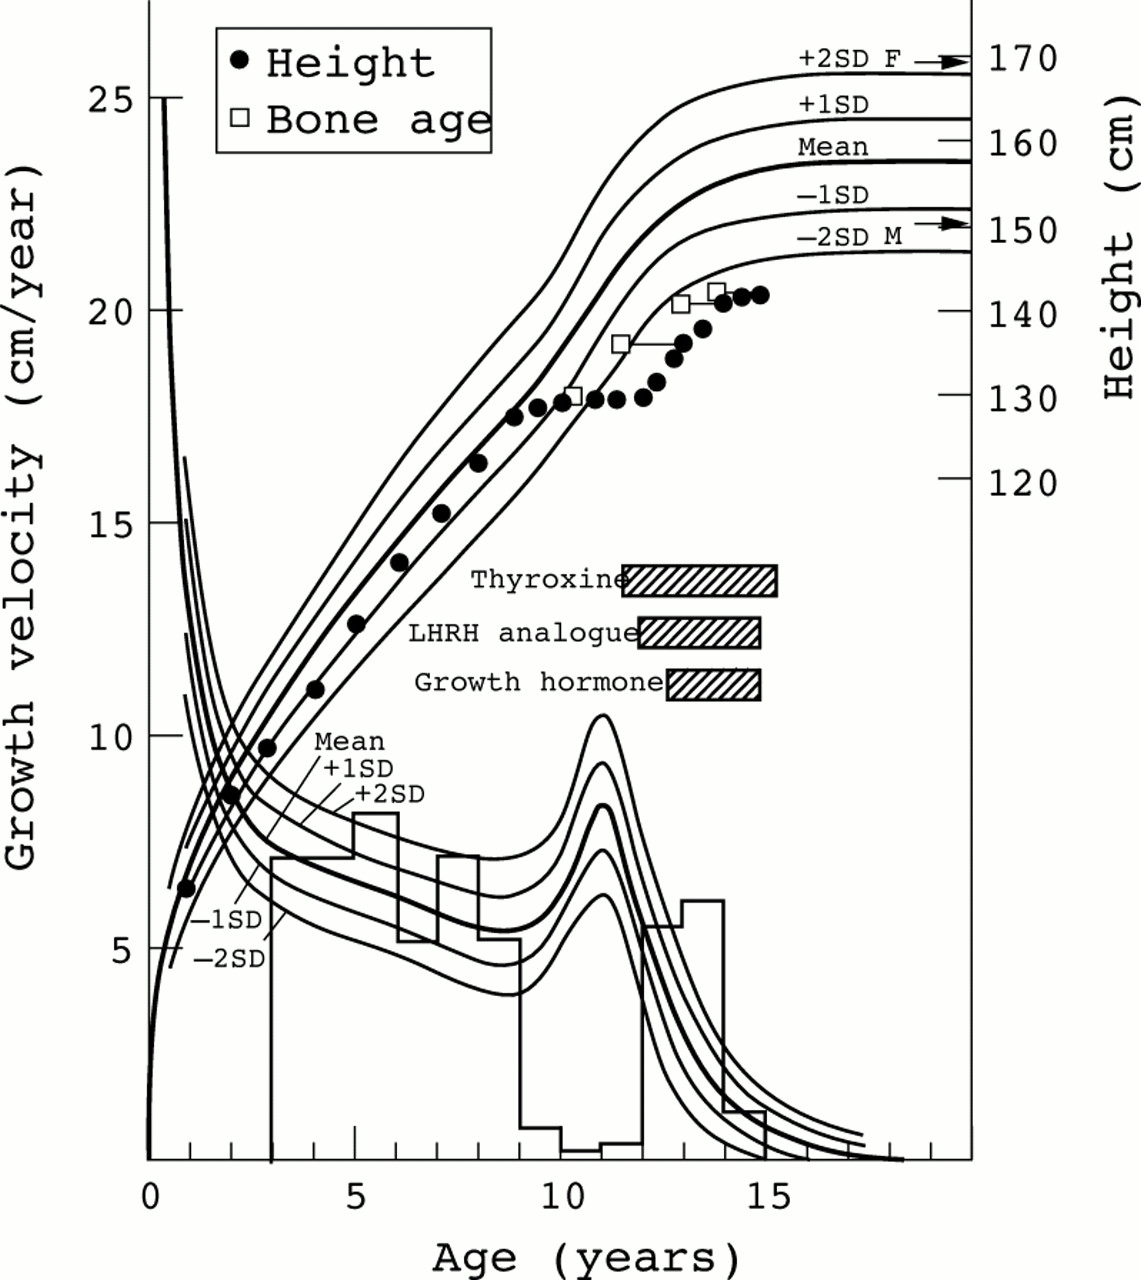 Lhrh analogue and growth hormone did not improve the final height download figure nvjuhfo Images